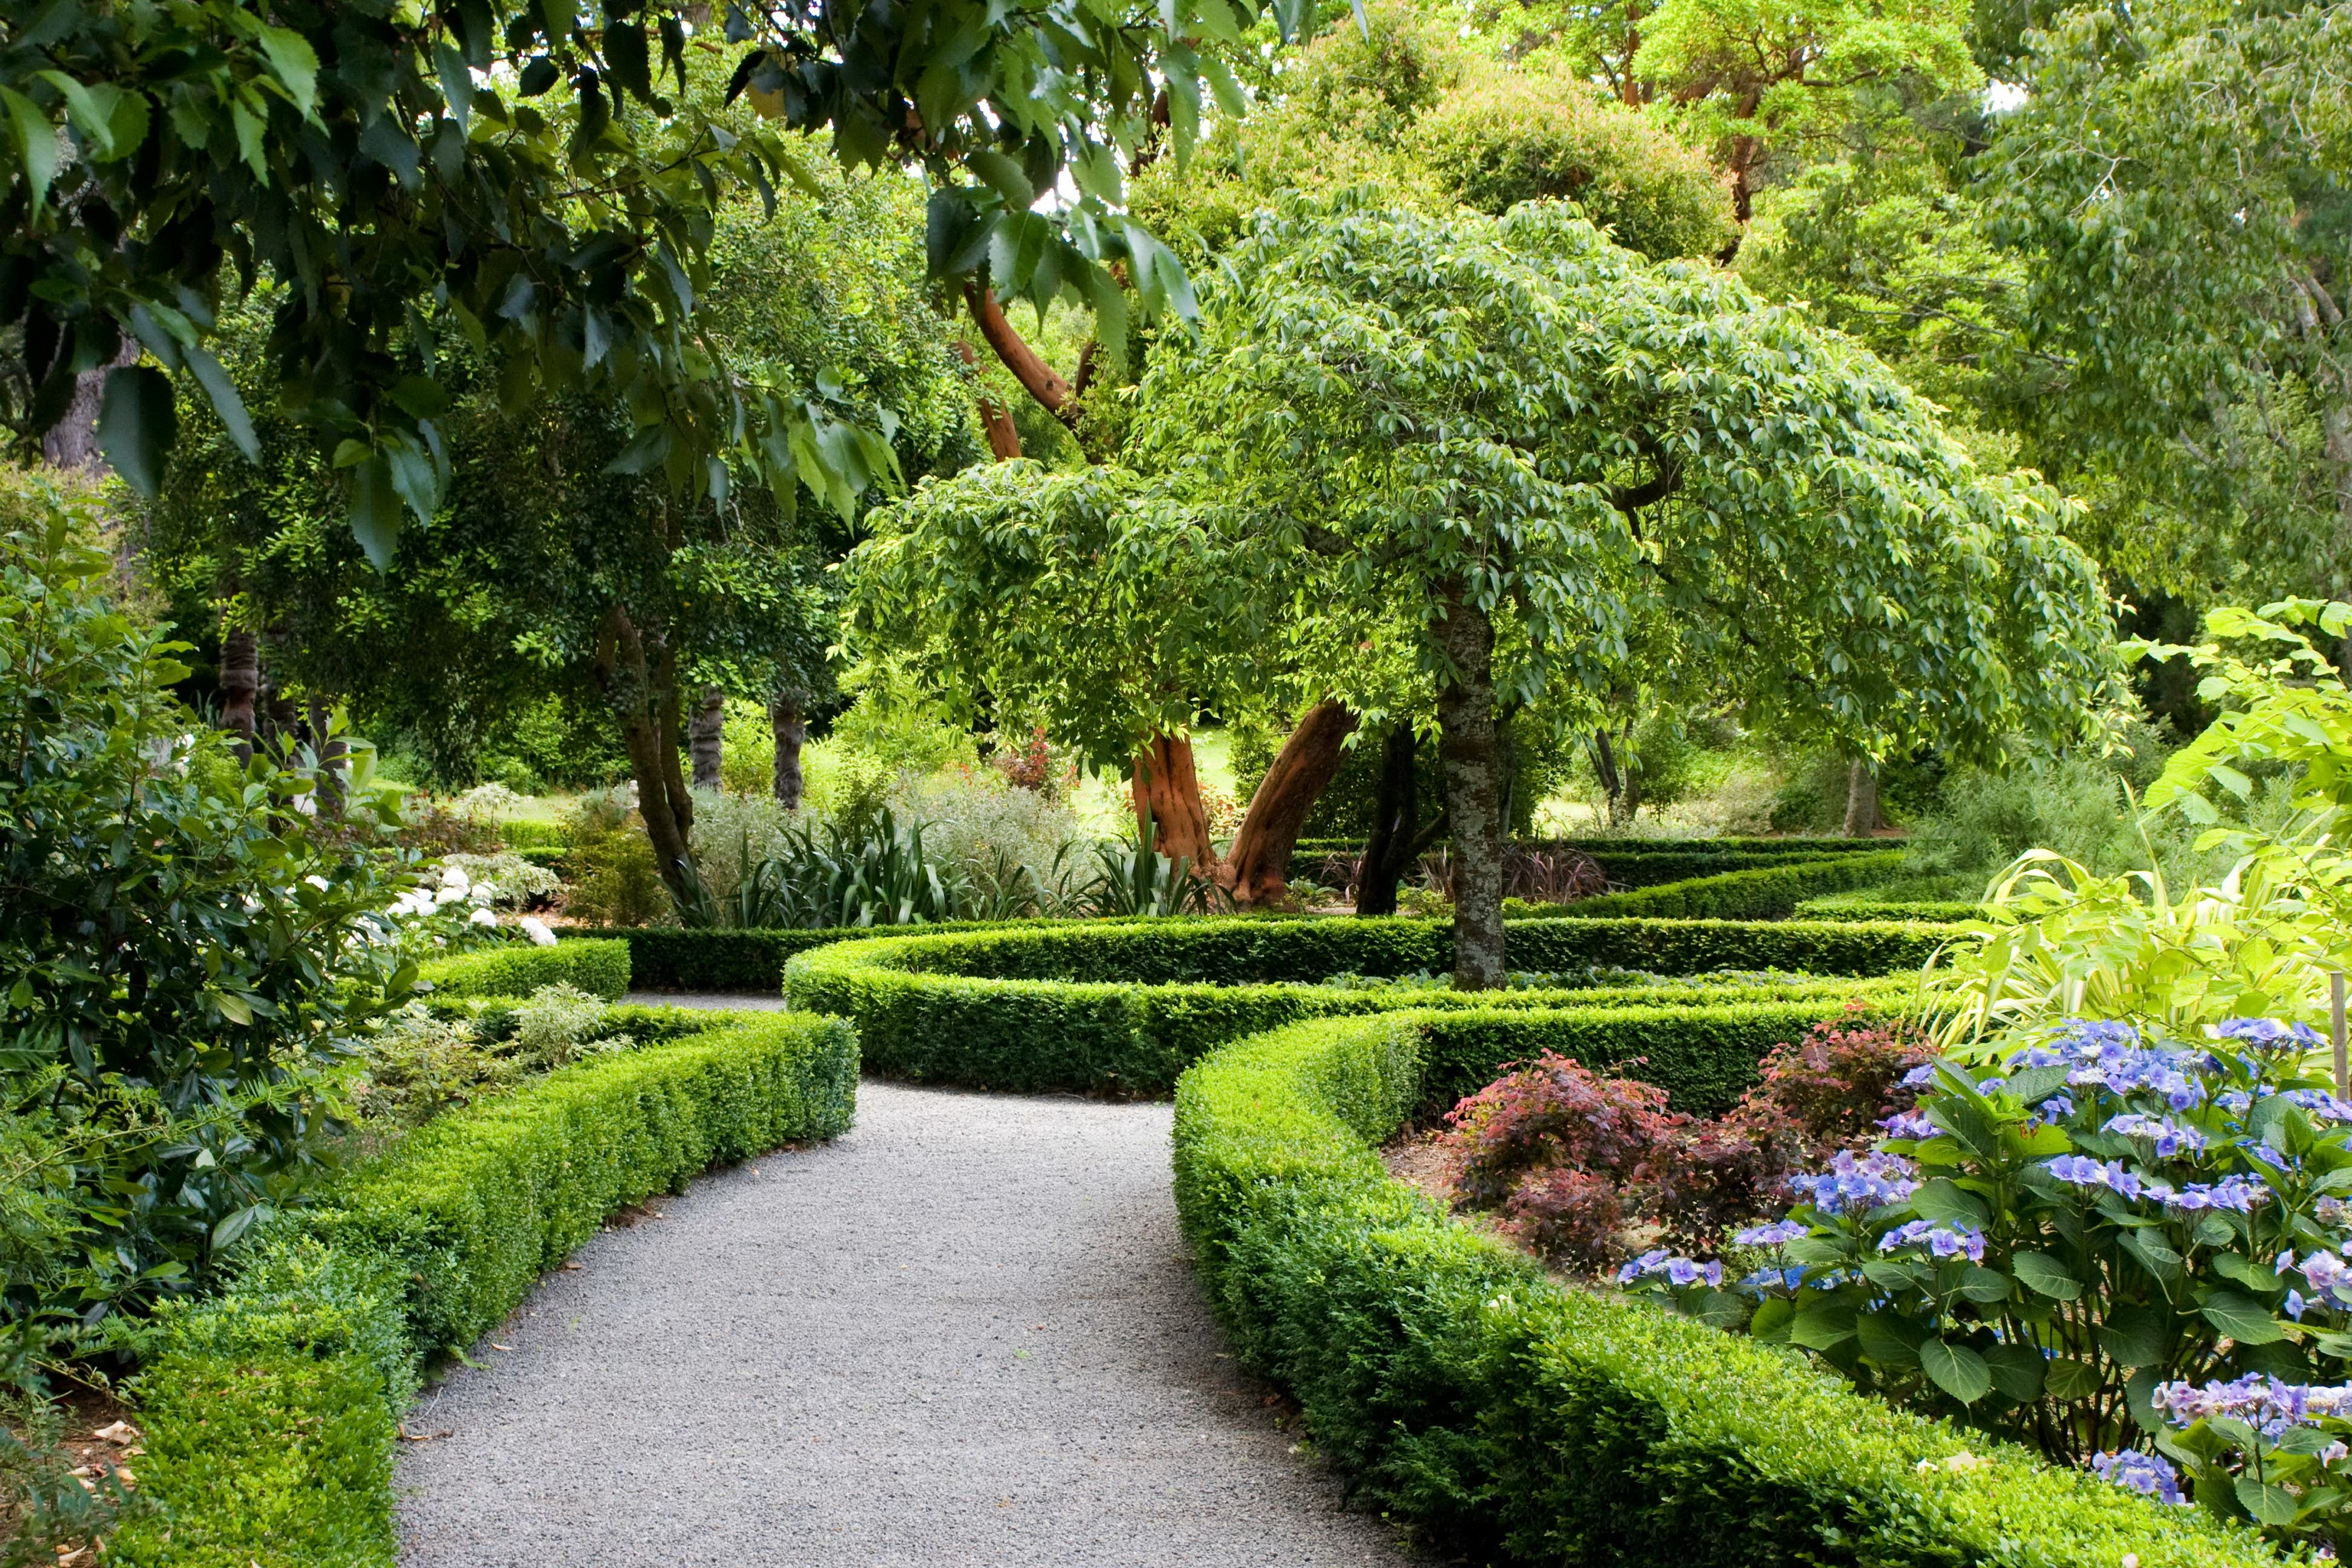 116034 download wallpaper Park, New Zealand, Landscape, Christchurch, Design, Nature, Bush screensavers and pictures for free